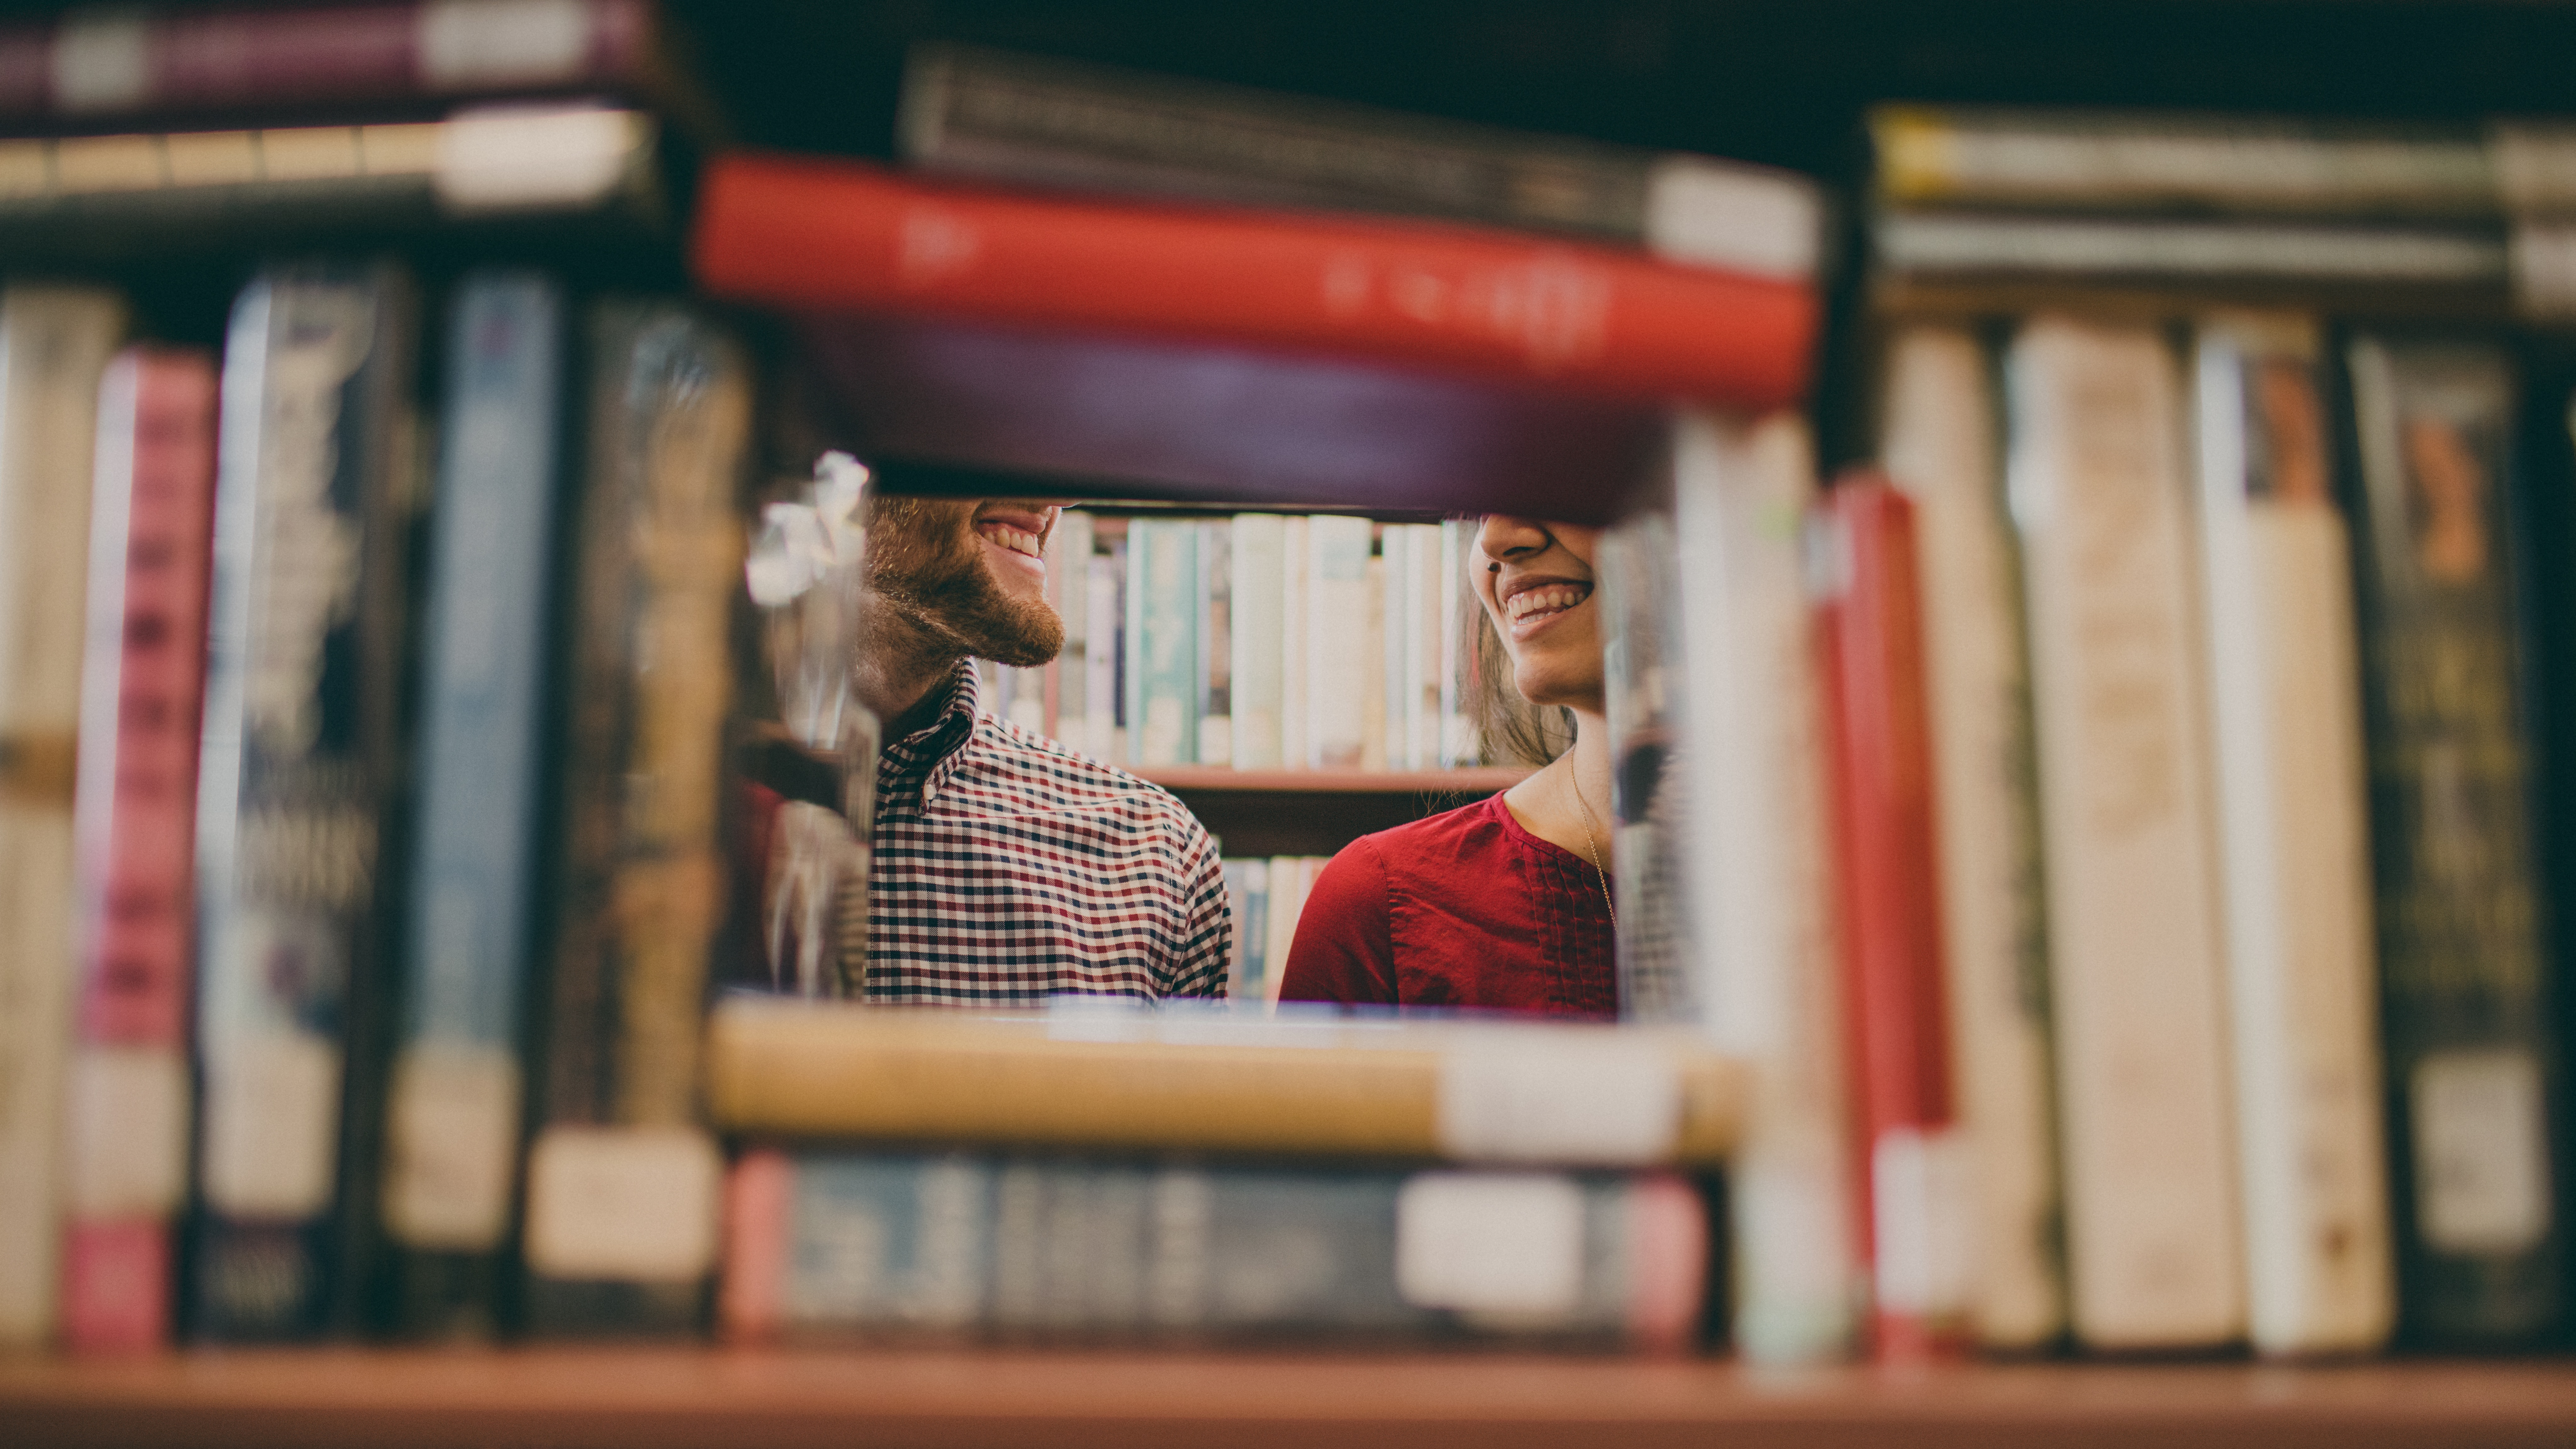 A couple behind a bookshelf.